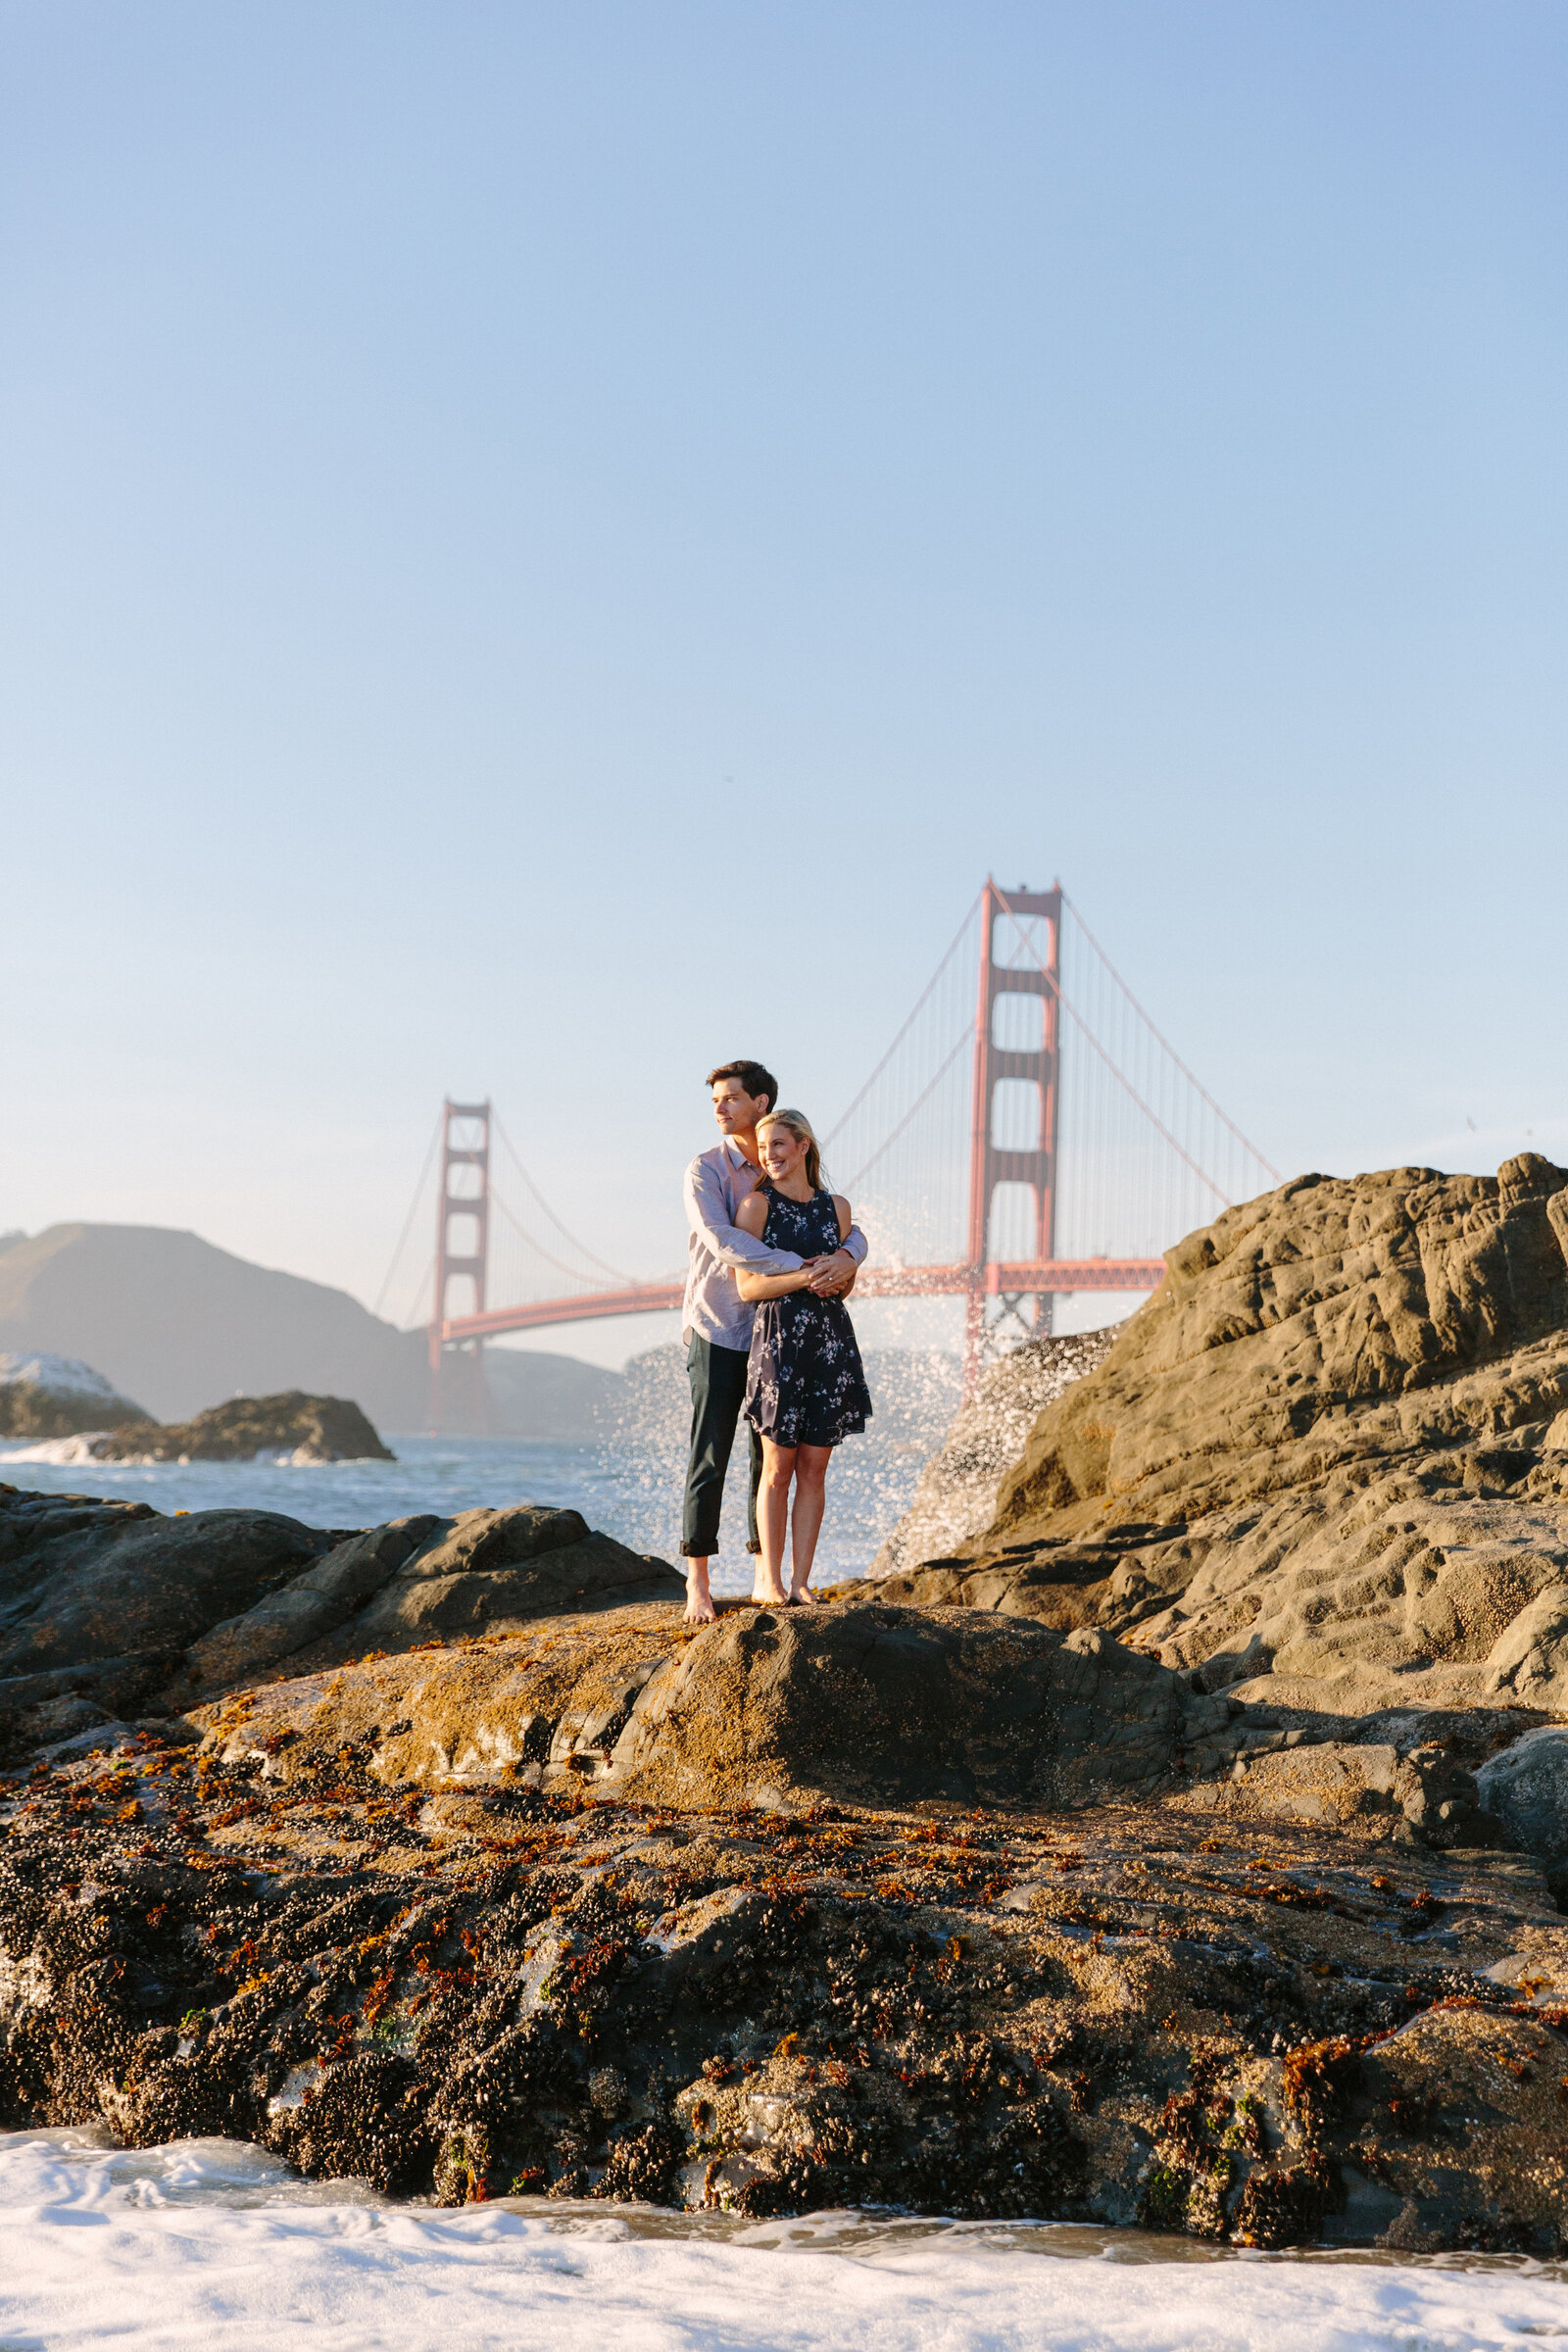 049-larissa-cleveland-engaged-wedding_photographer-san-francisco-carmel-napa-california-larissa-cleveland-mackenziealex-engaged-214